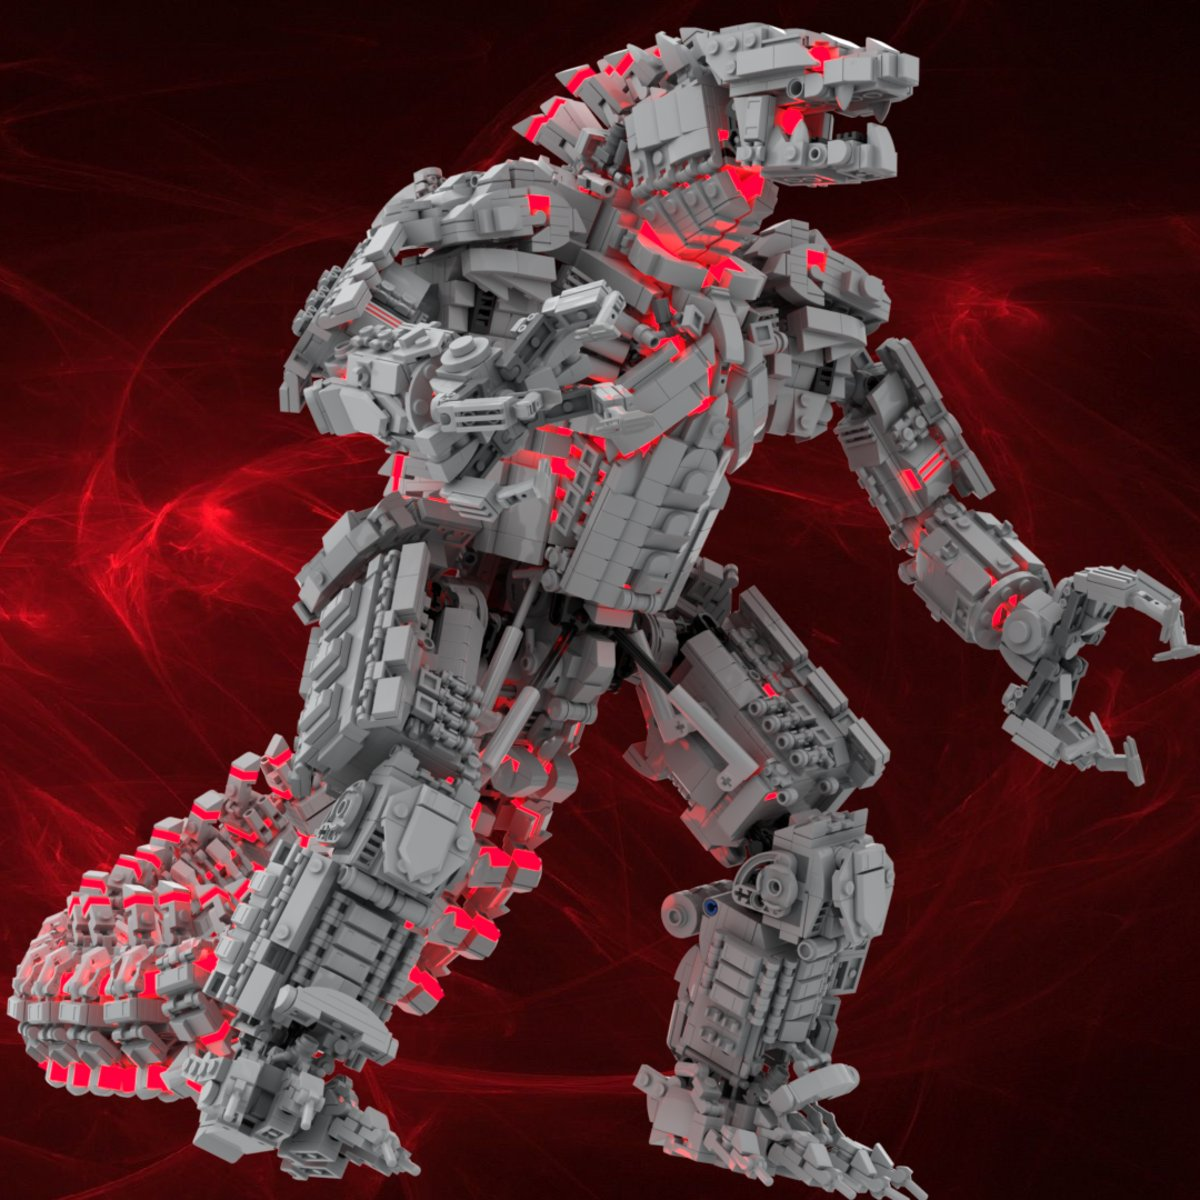 MechaGodzilla in Lego form